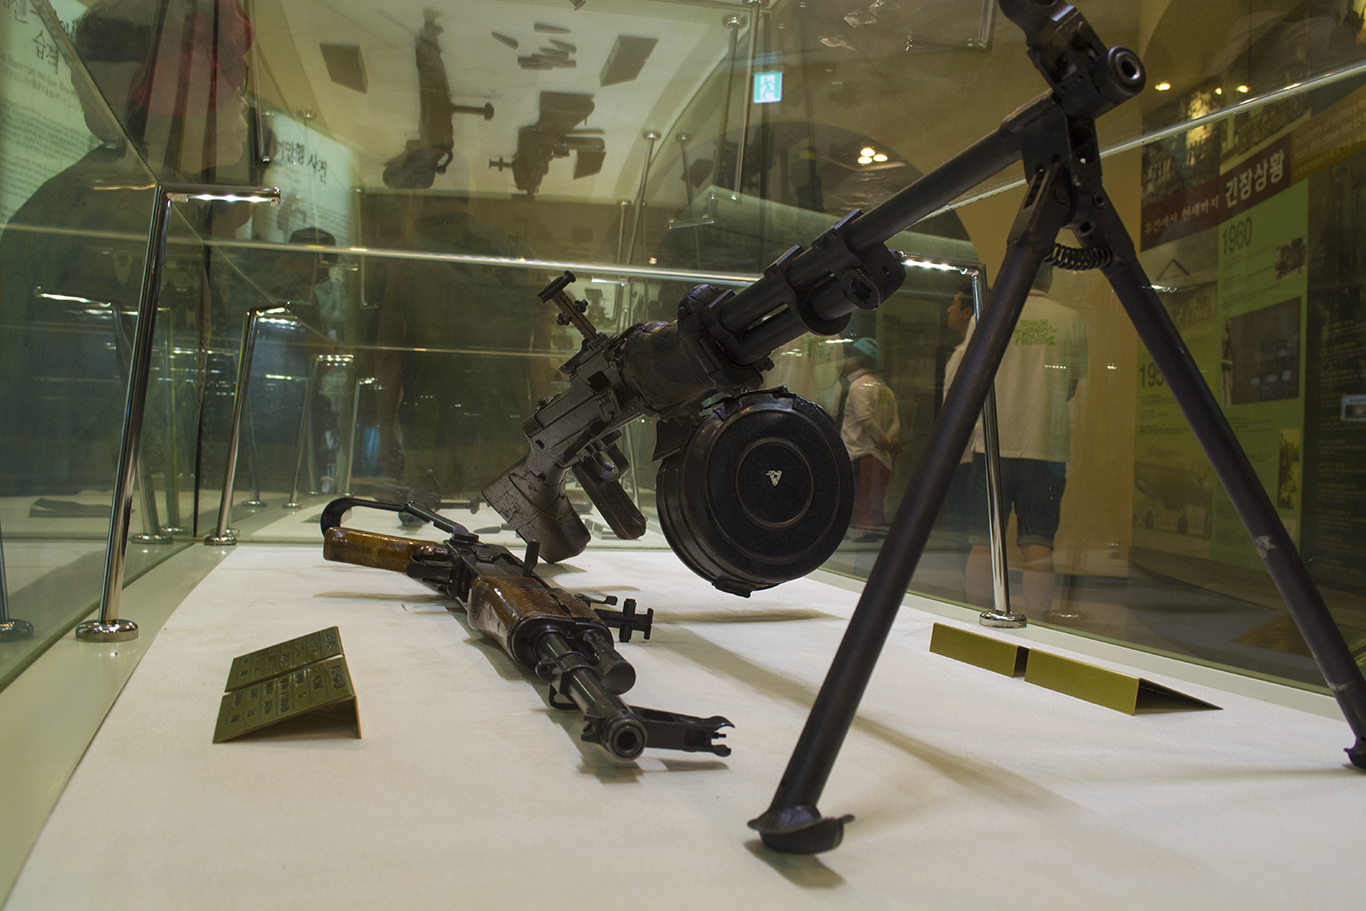 A Type 58 assault rifle (left) and a Type 56 light machine gun (right) on display at the South Korean entrance to the Third Tunnel of Aggression in the DMZ. The weapons are a part of an exhibit of military equipment that had been recovered from the North Koreans over the past 50 years.(CHRISTOPHER CAMERON/THE STATESMAN)